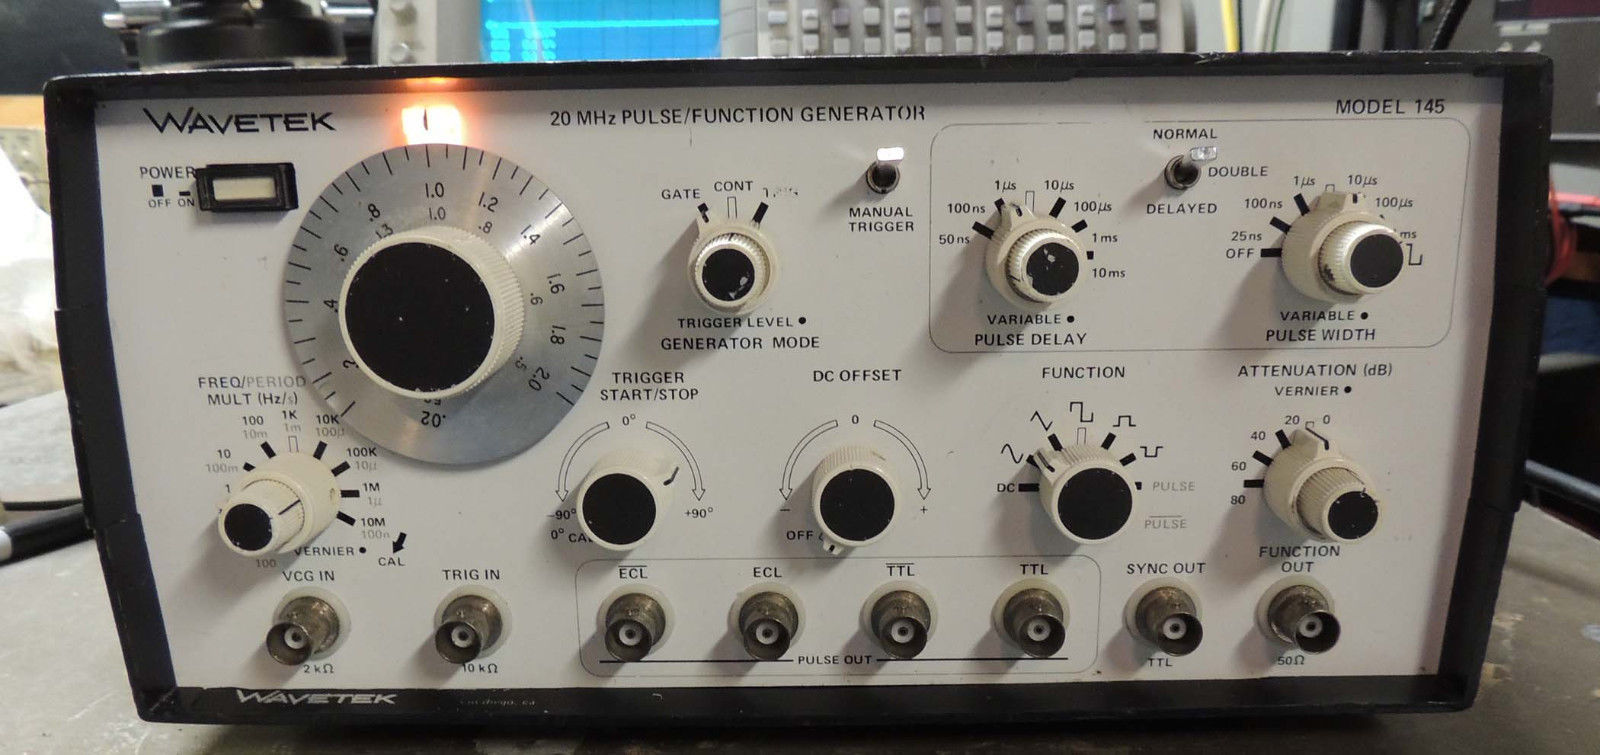 Wavetek Model 145 20mhz Pulse Function And 44 Similar Items Generator Excellent Tested Working